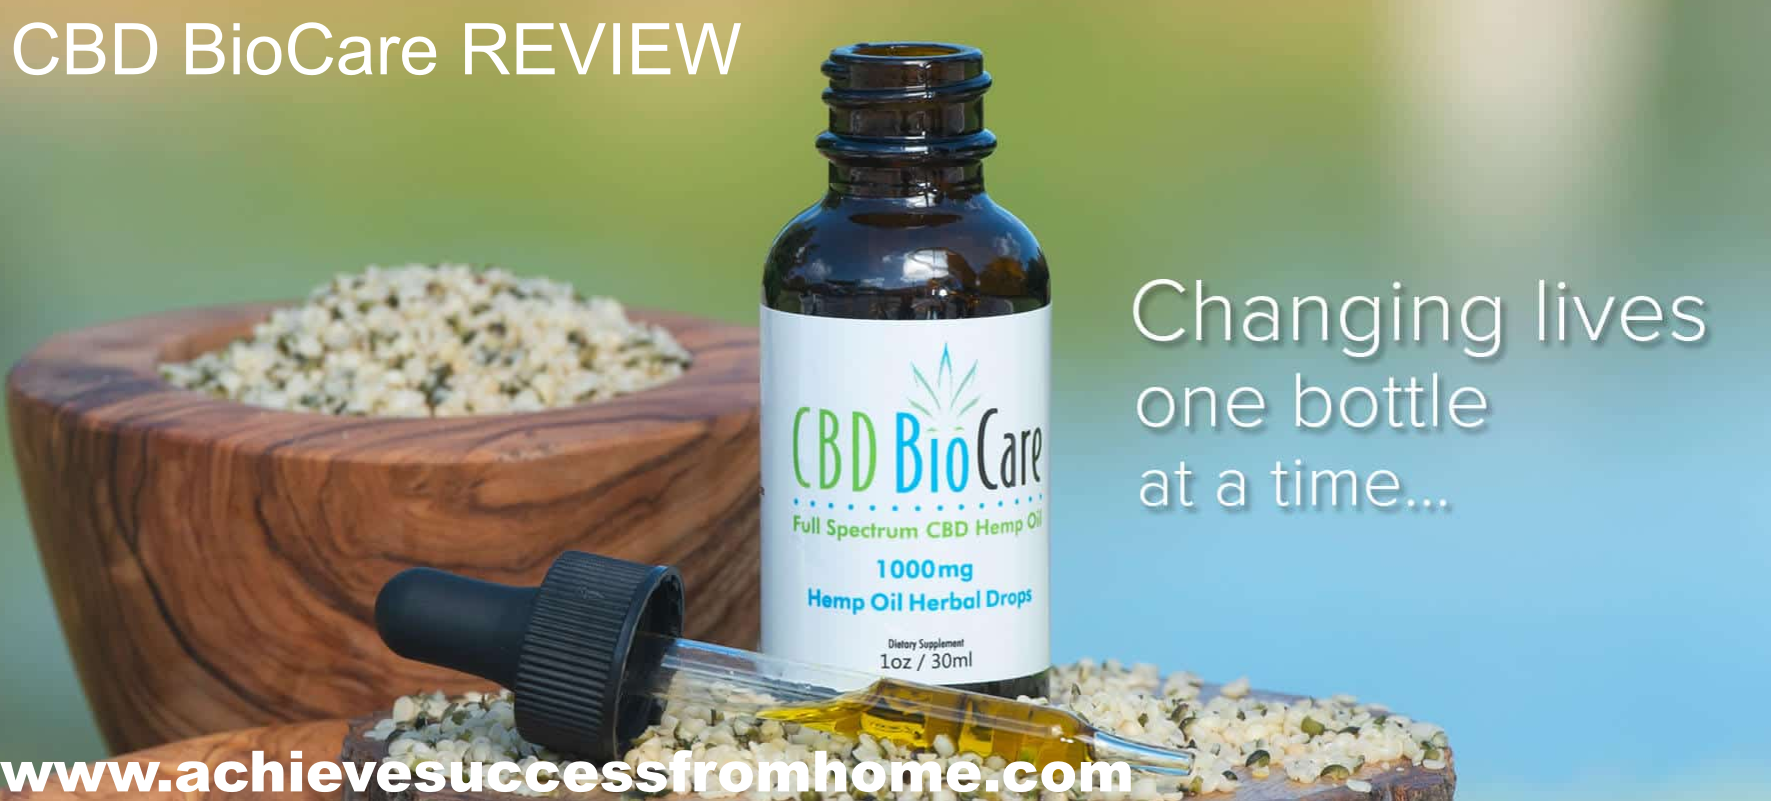 is CBD Biocare a Great Direct Sales Business or an MLM in Disguise?